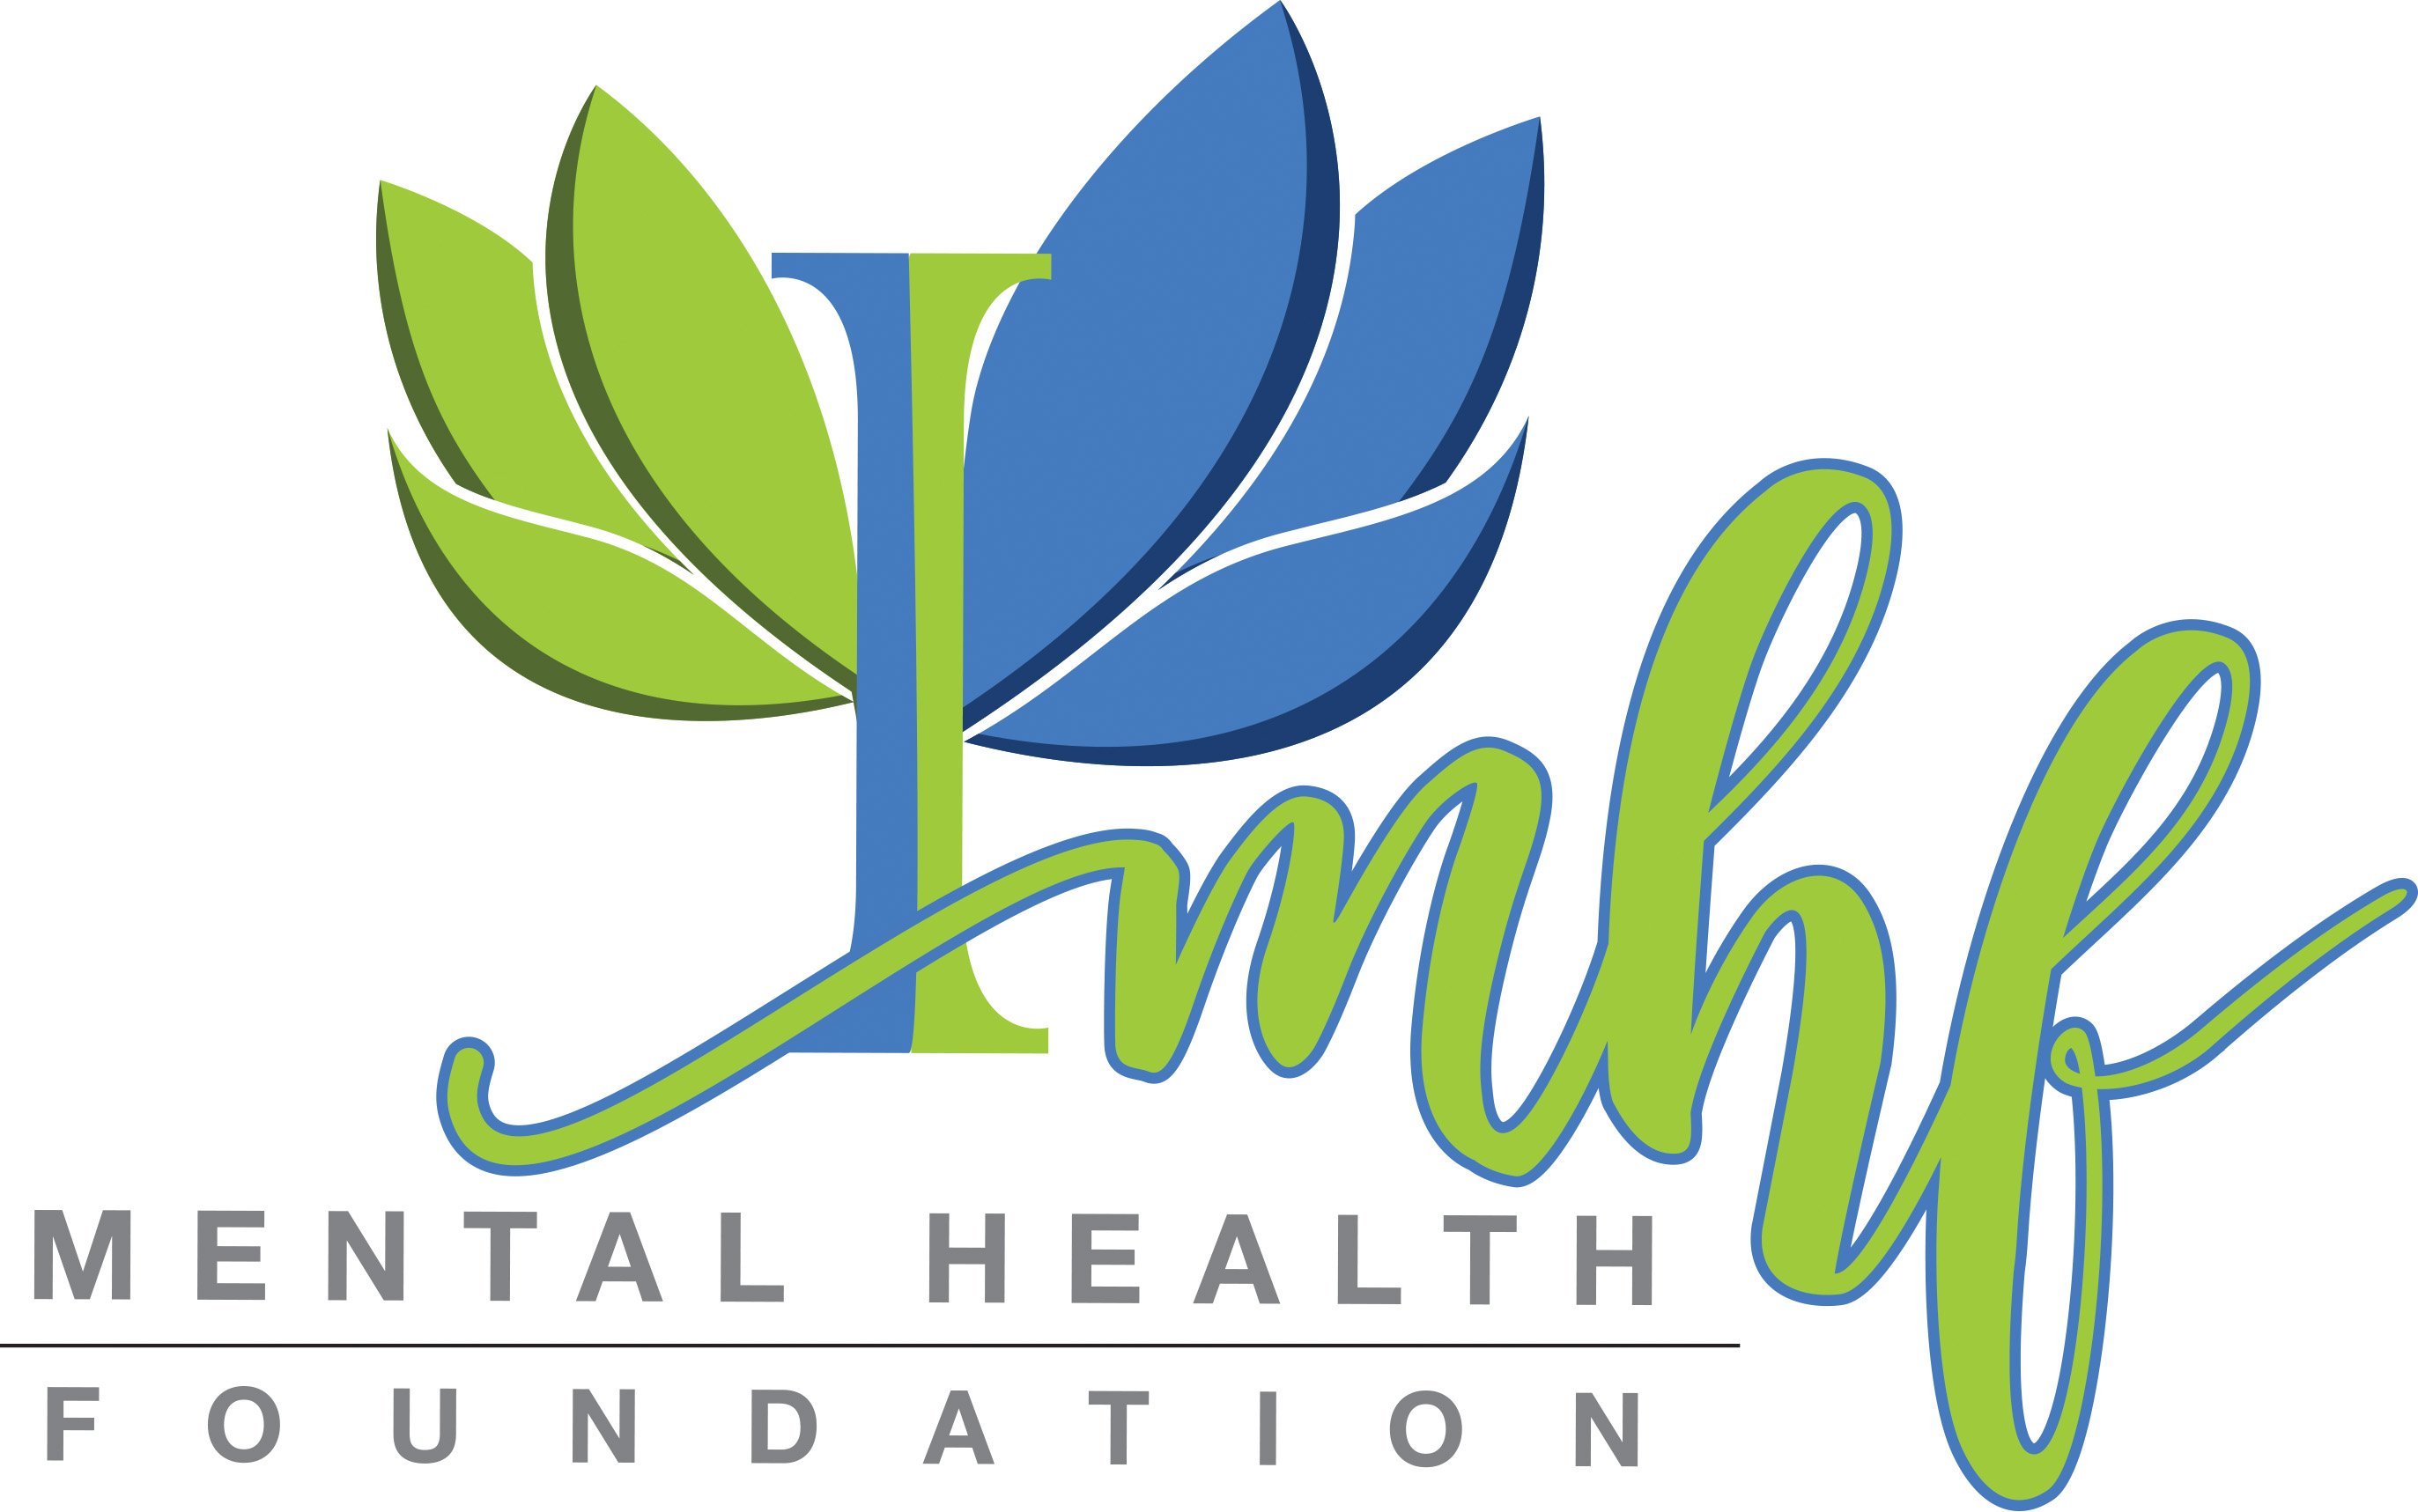 Mental Health Foundation Sint Maarten